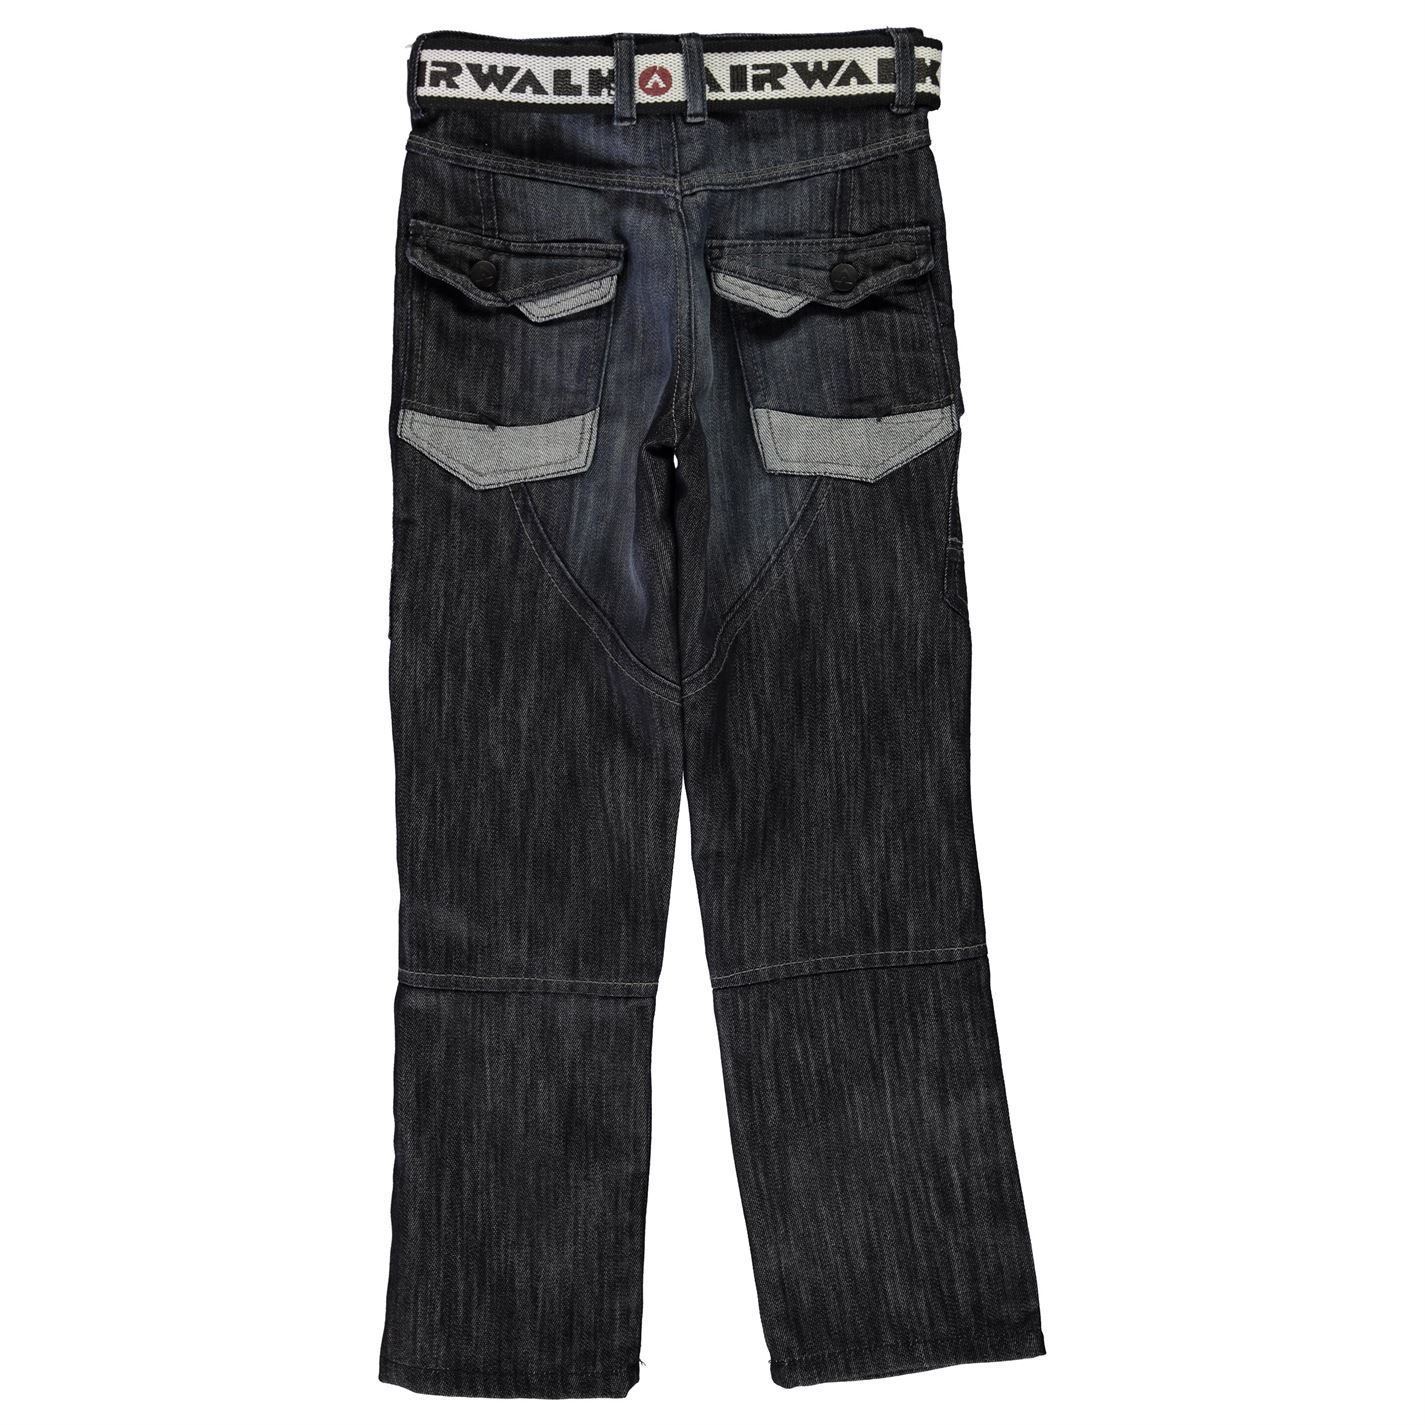 Airwalk Boys Belted Cargo Jeans Trousers Bottoms Pants Junior 6 Pockets